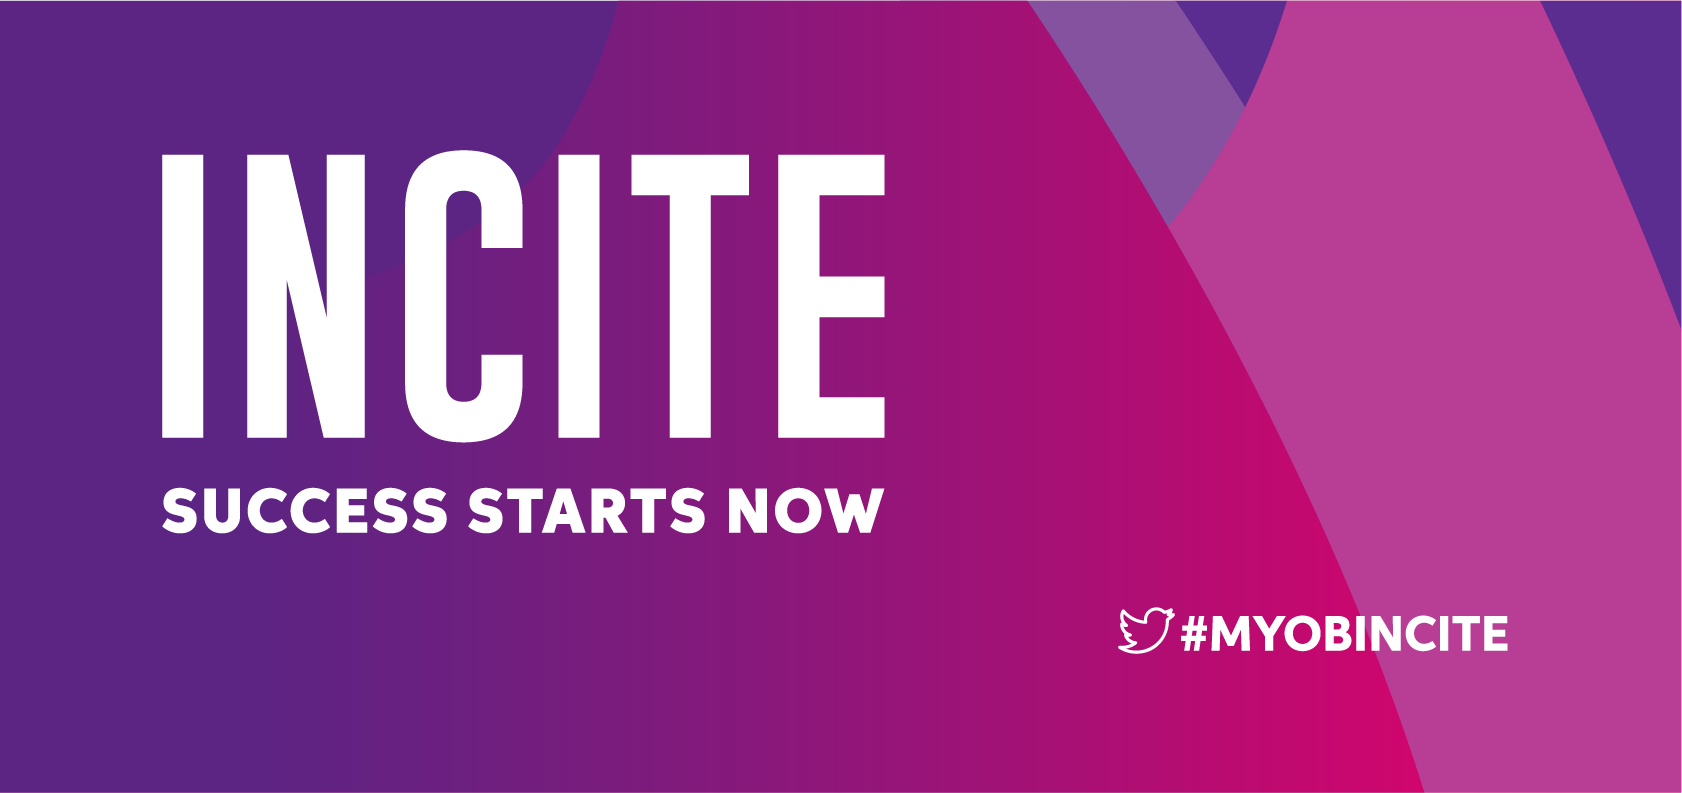 5 reasons you won't want to miss INCITE